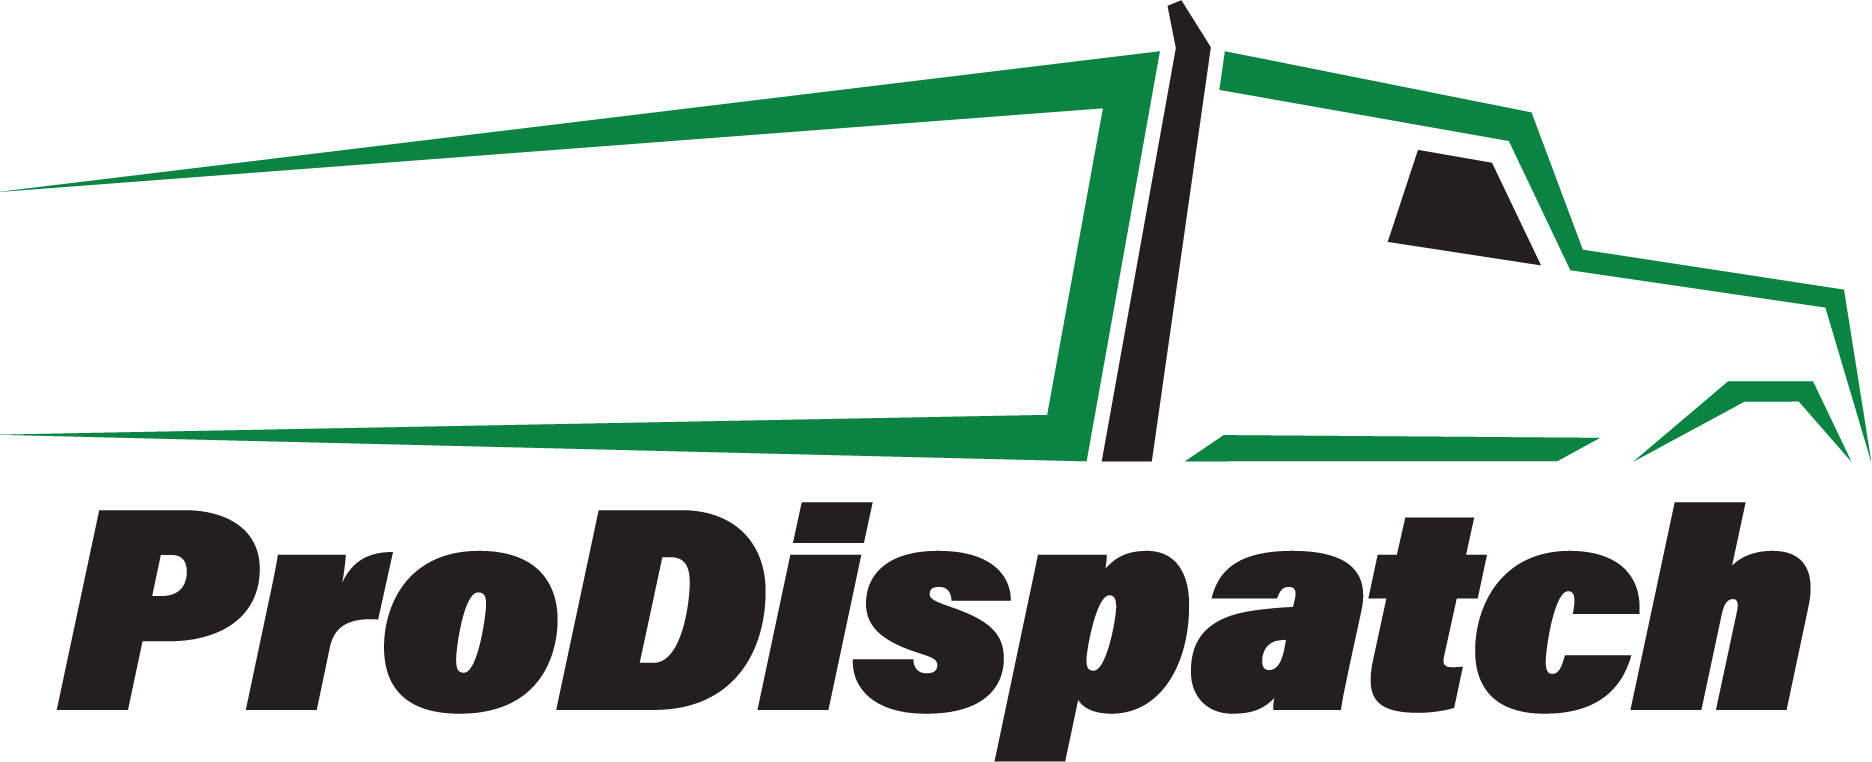 ProDispatch - Freight Dispatching Services for Dry Van, Reefer, Power Only, and Flat Beds